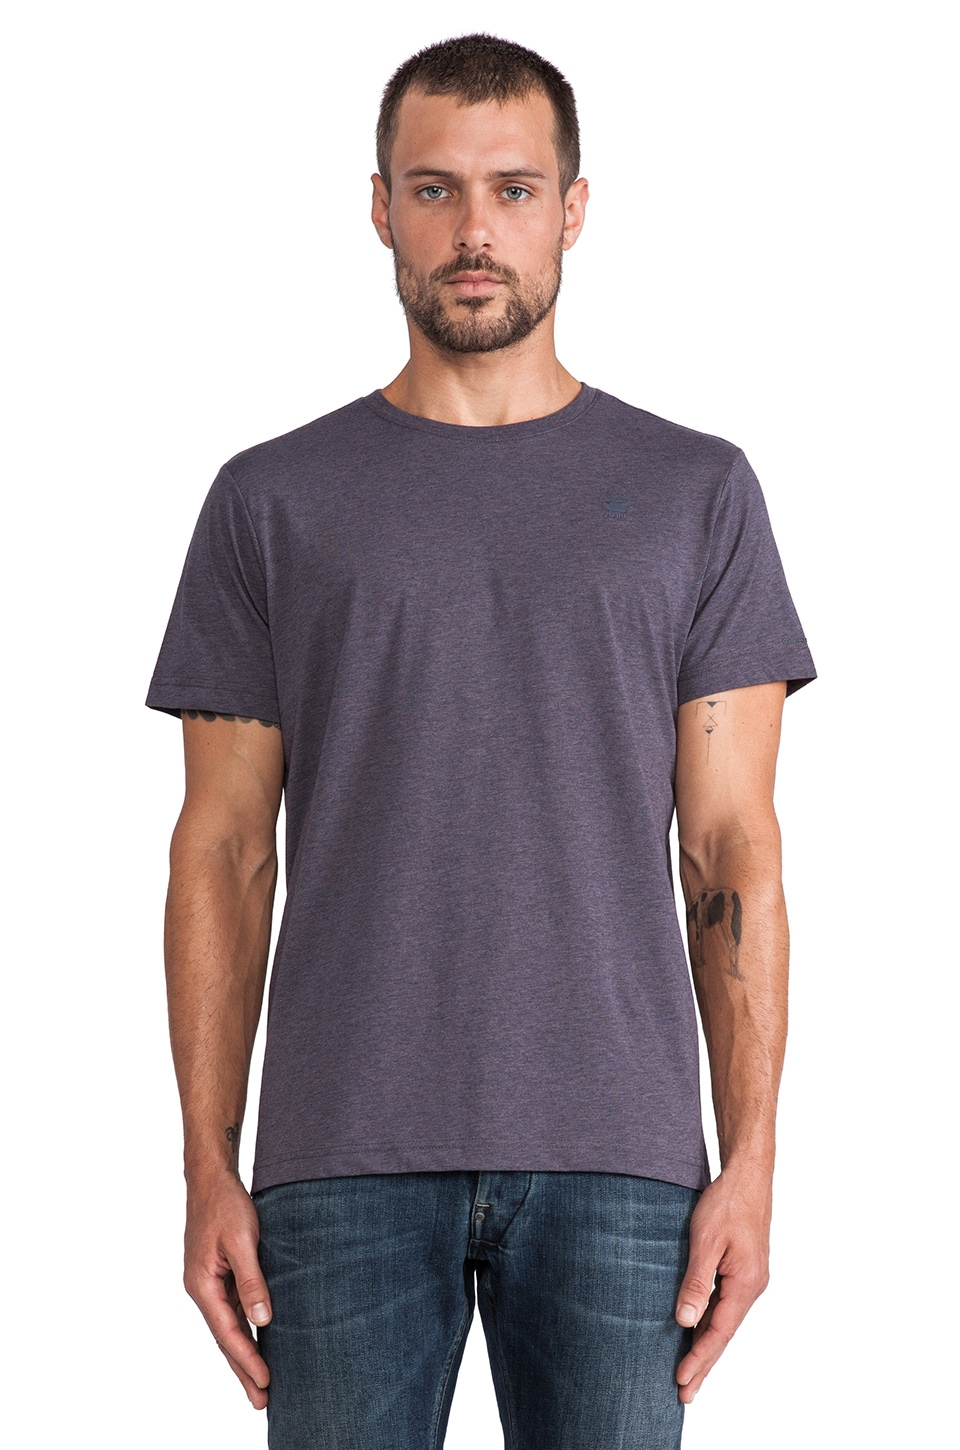 G-Star 2-Pack Crew Neck Tees in Petrol Heather